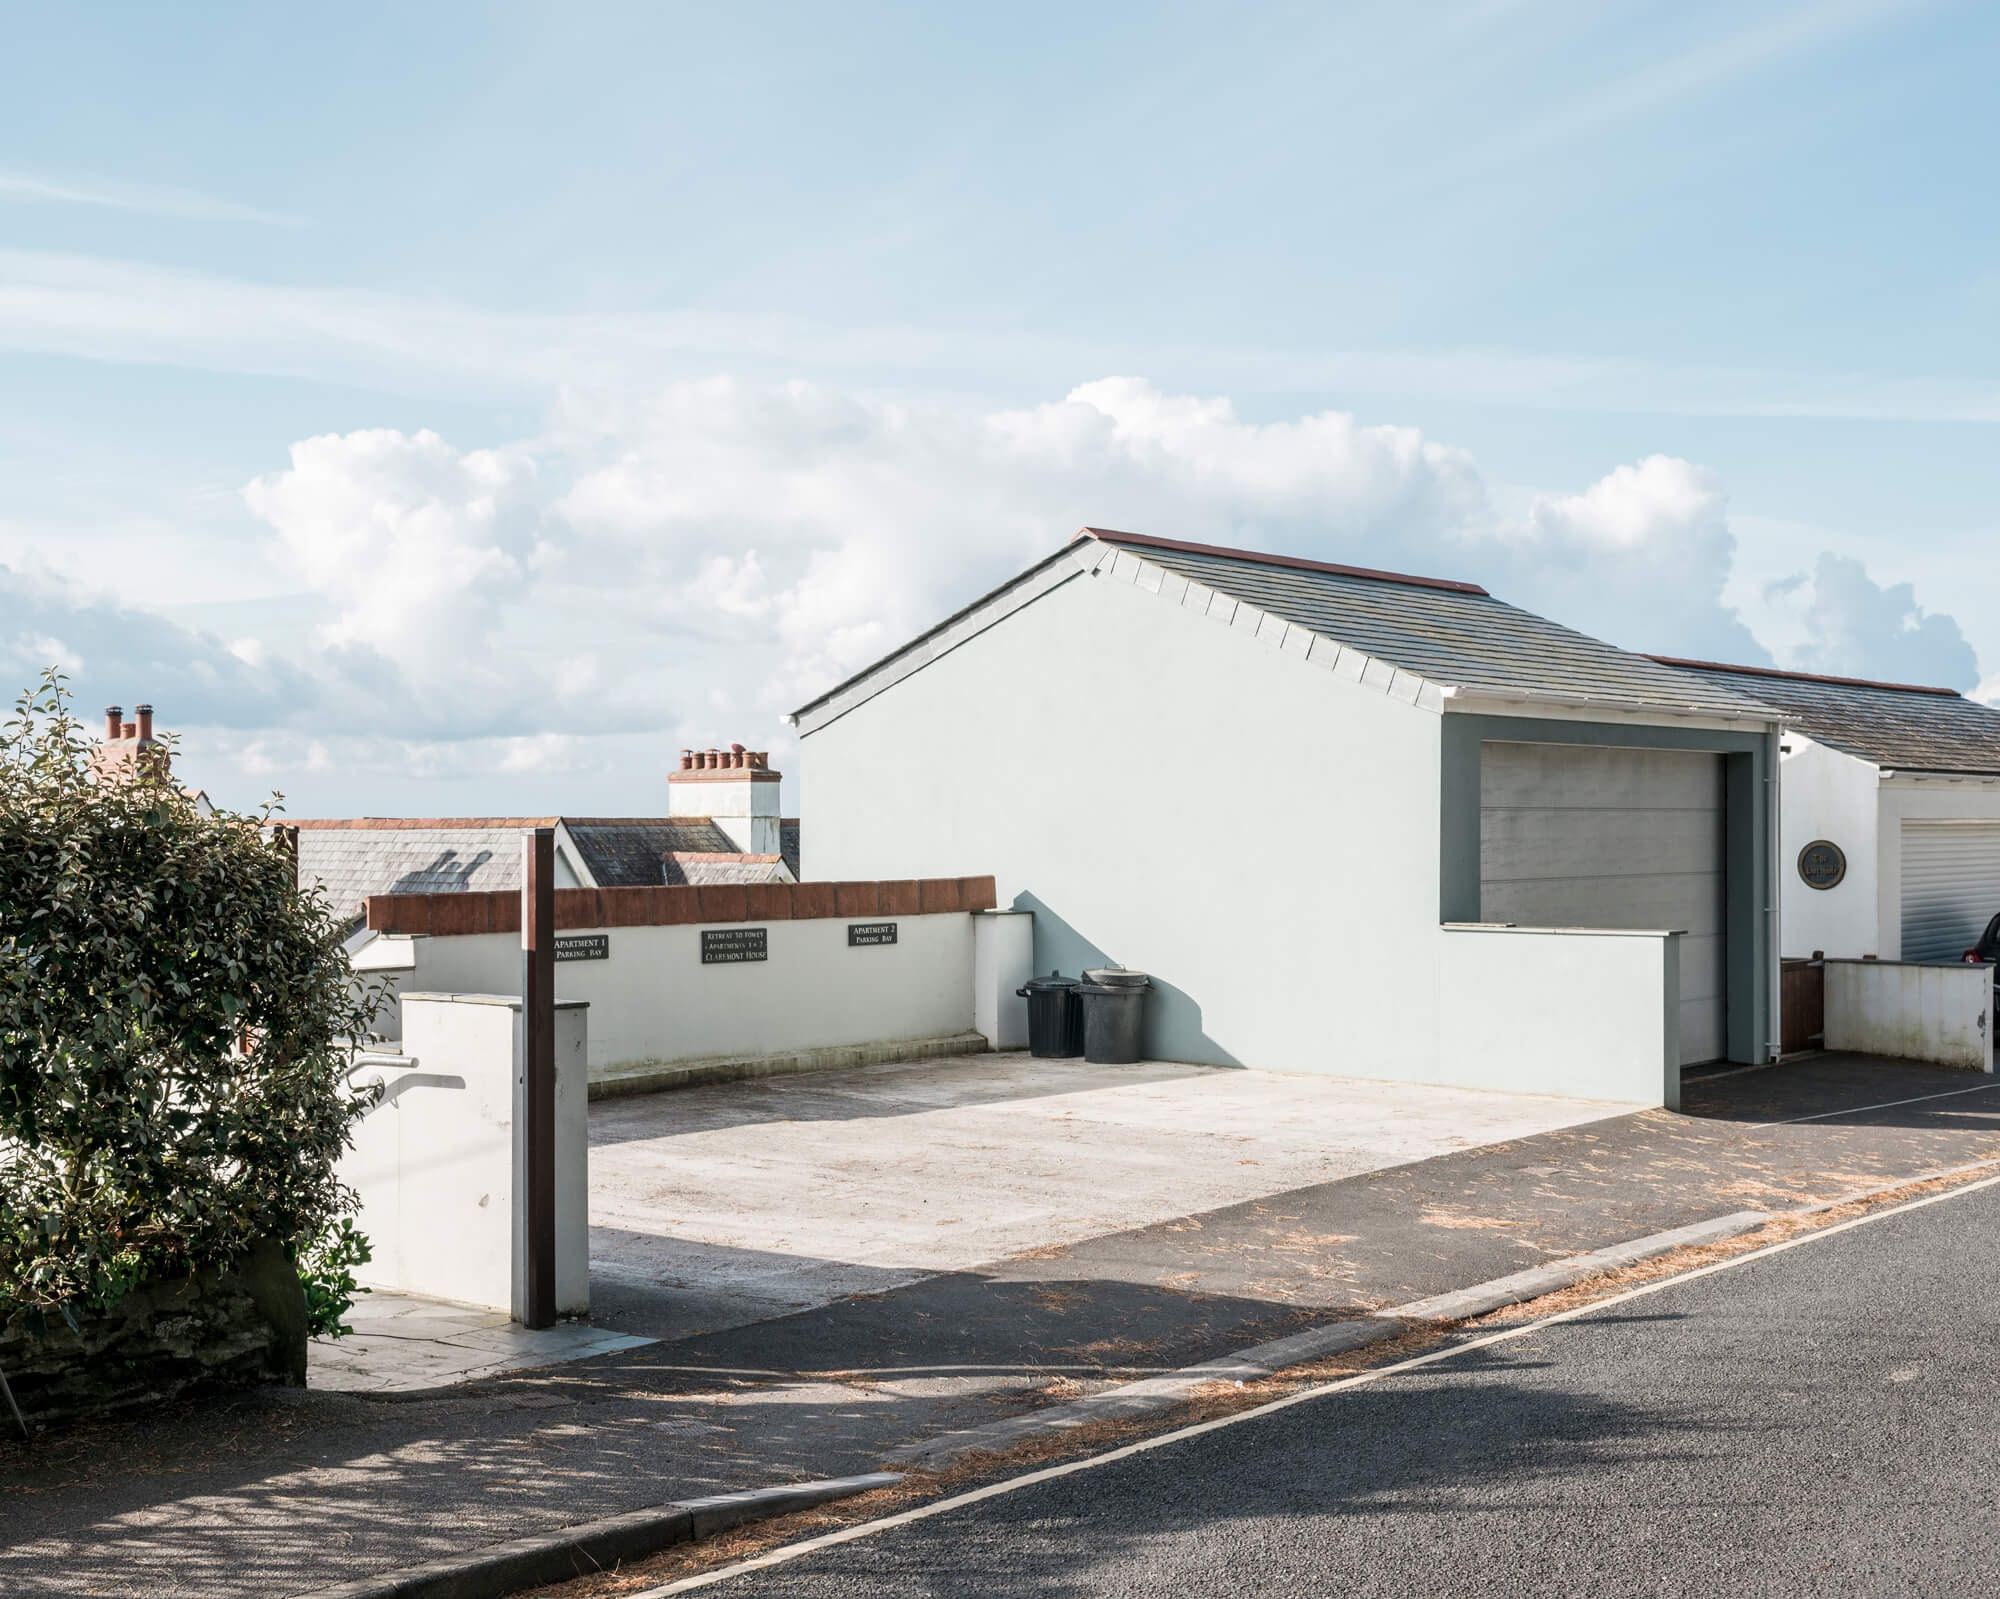 rob hardy house with garage with blue skied background in Cornwall